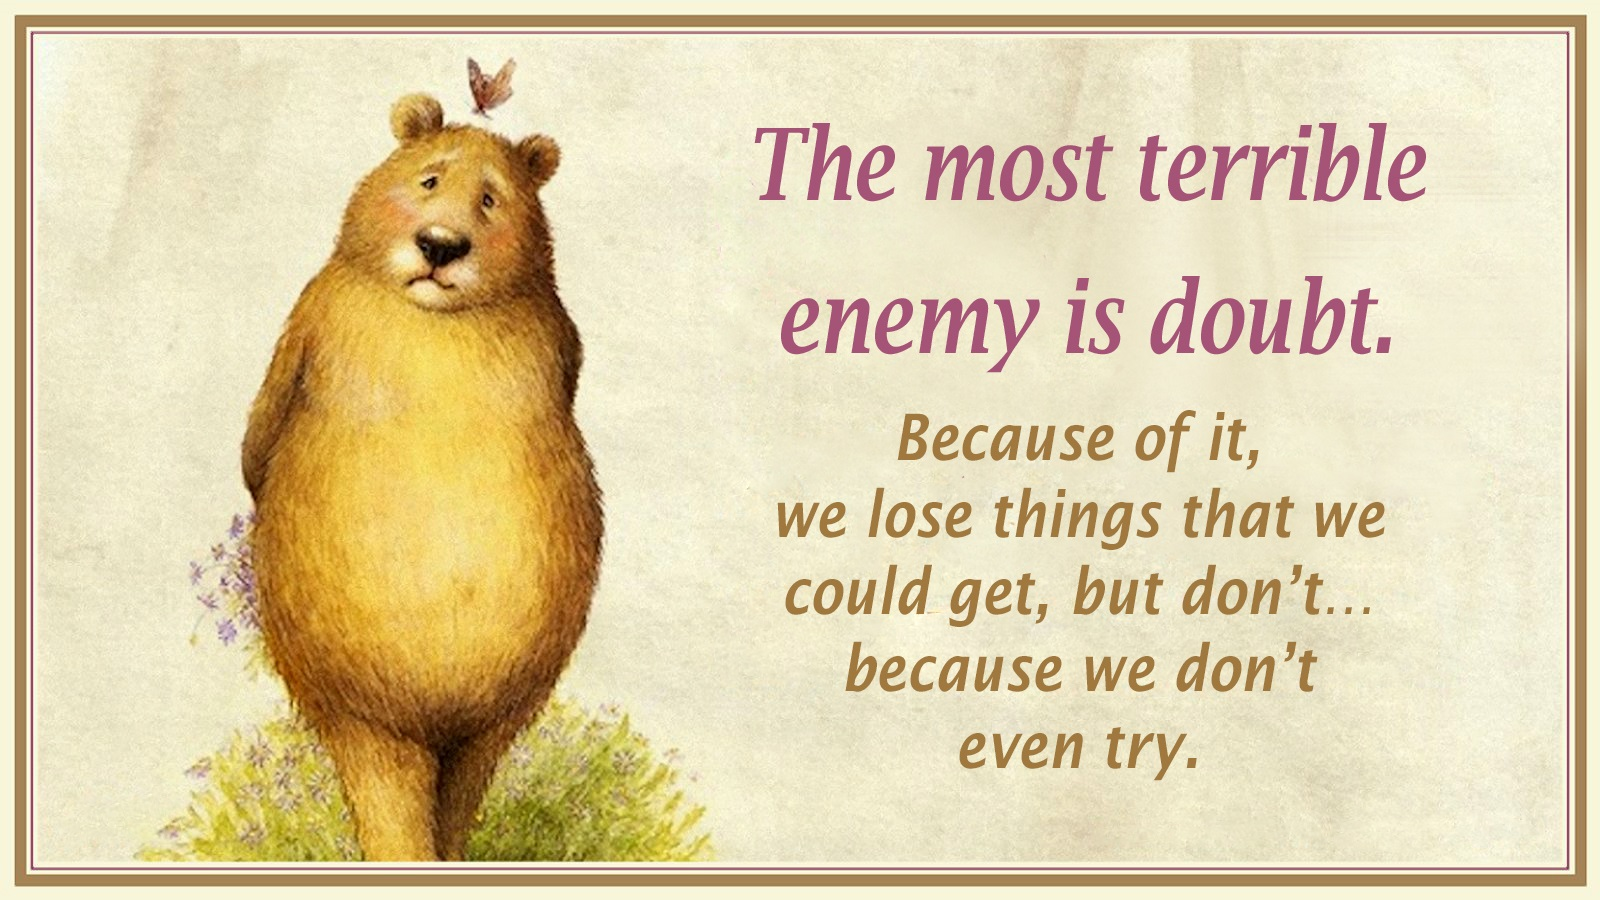 00 the most terrible enemy is doubt. russian 161015